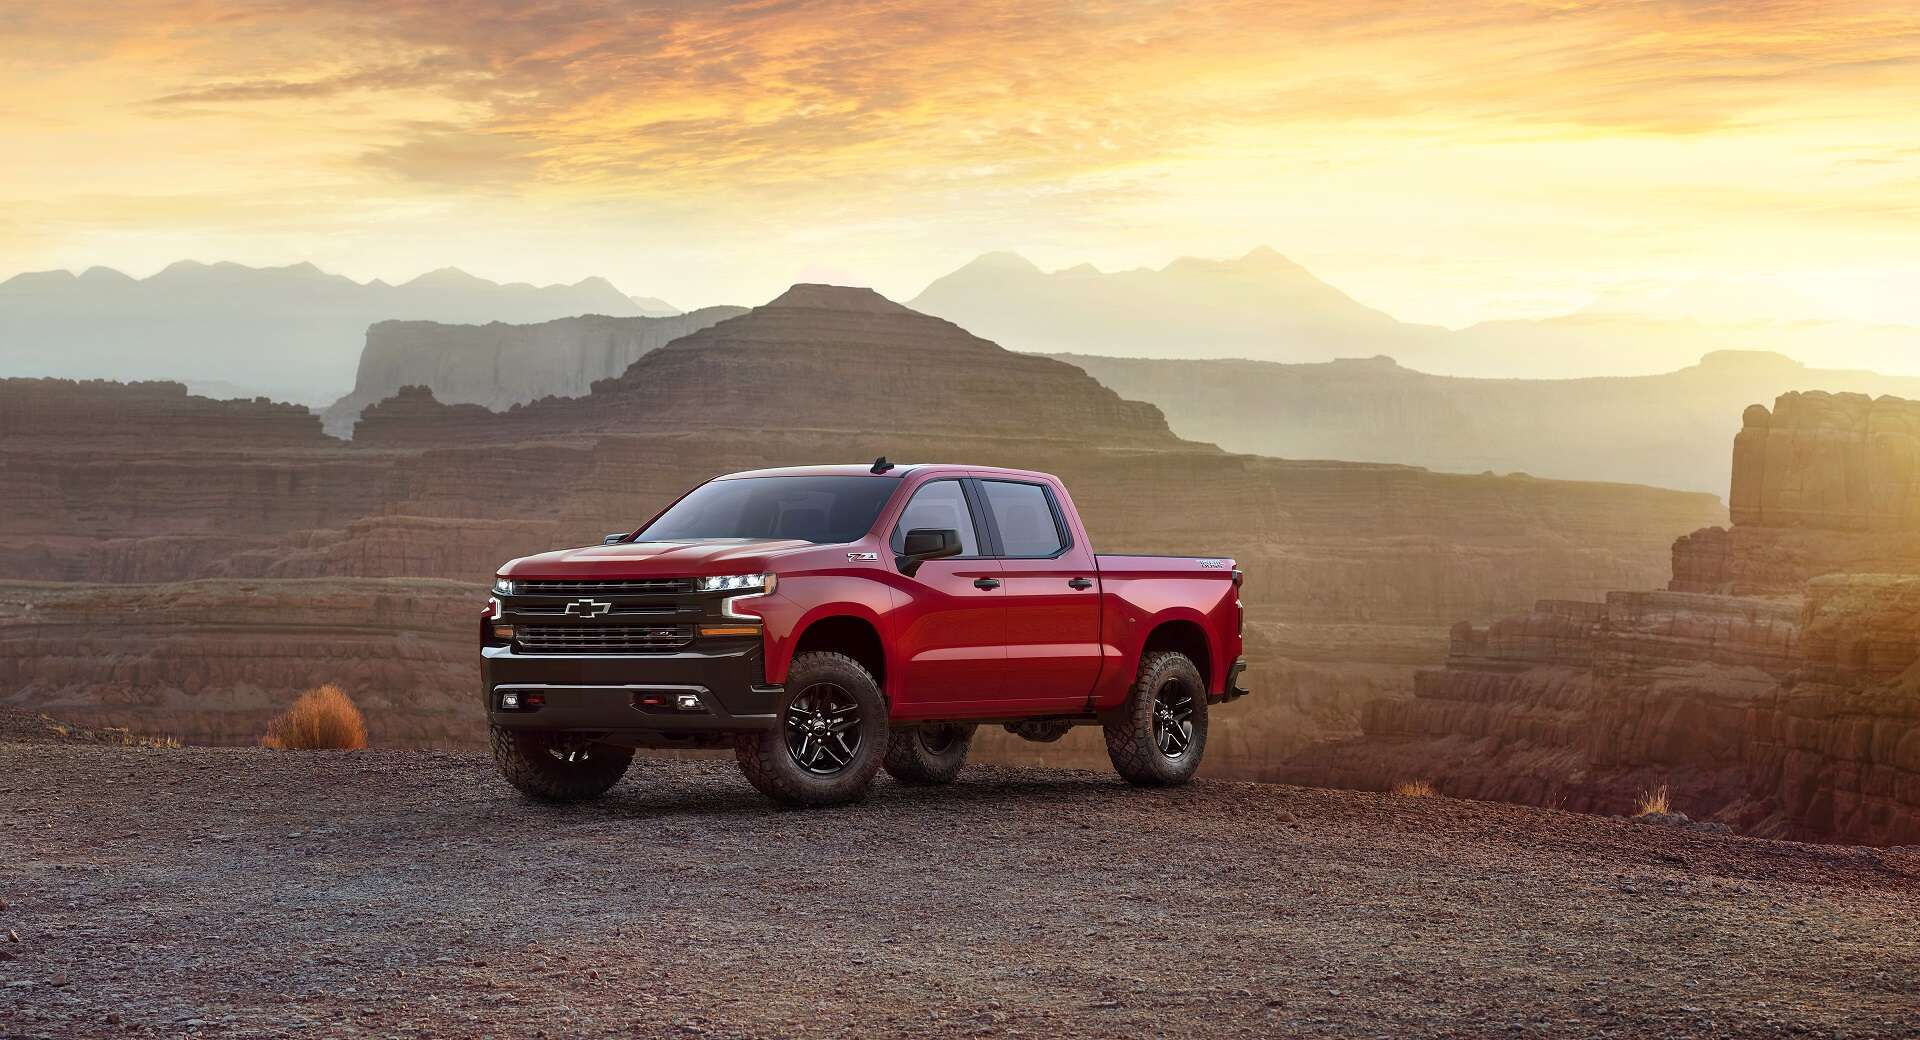 silverado chevrolet country en rugged models news silveradohighctry media luxury defines us highcountry high truck pages sep detail content